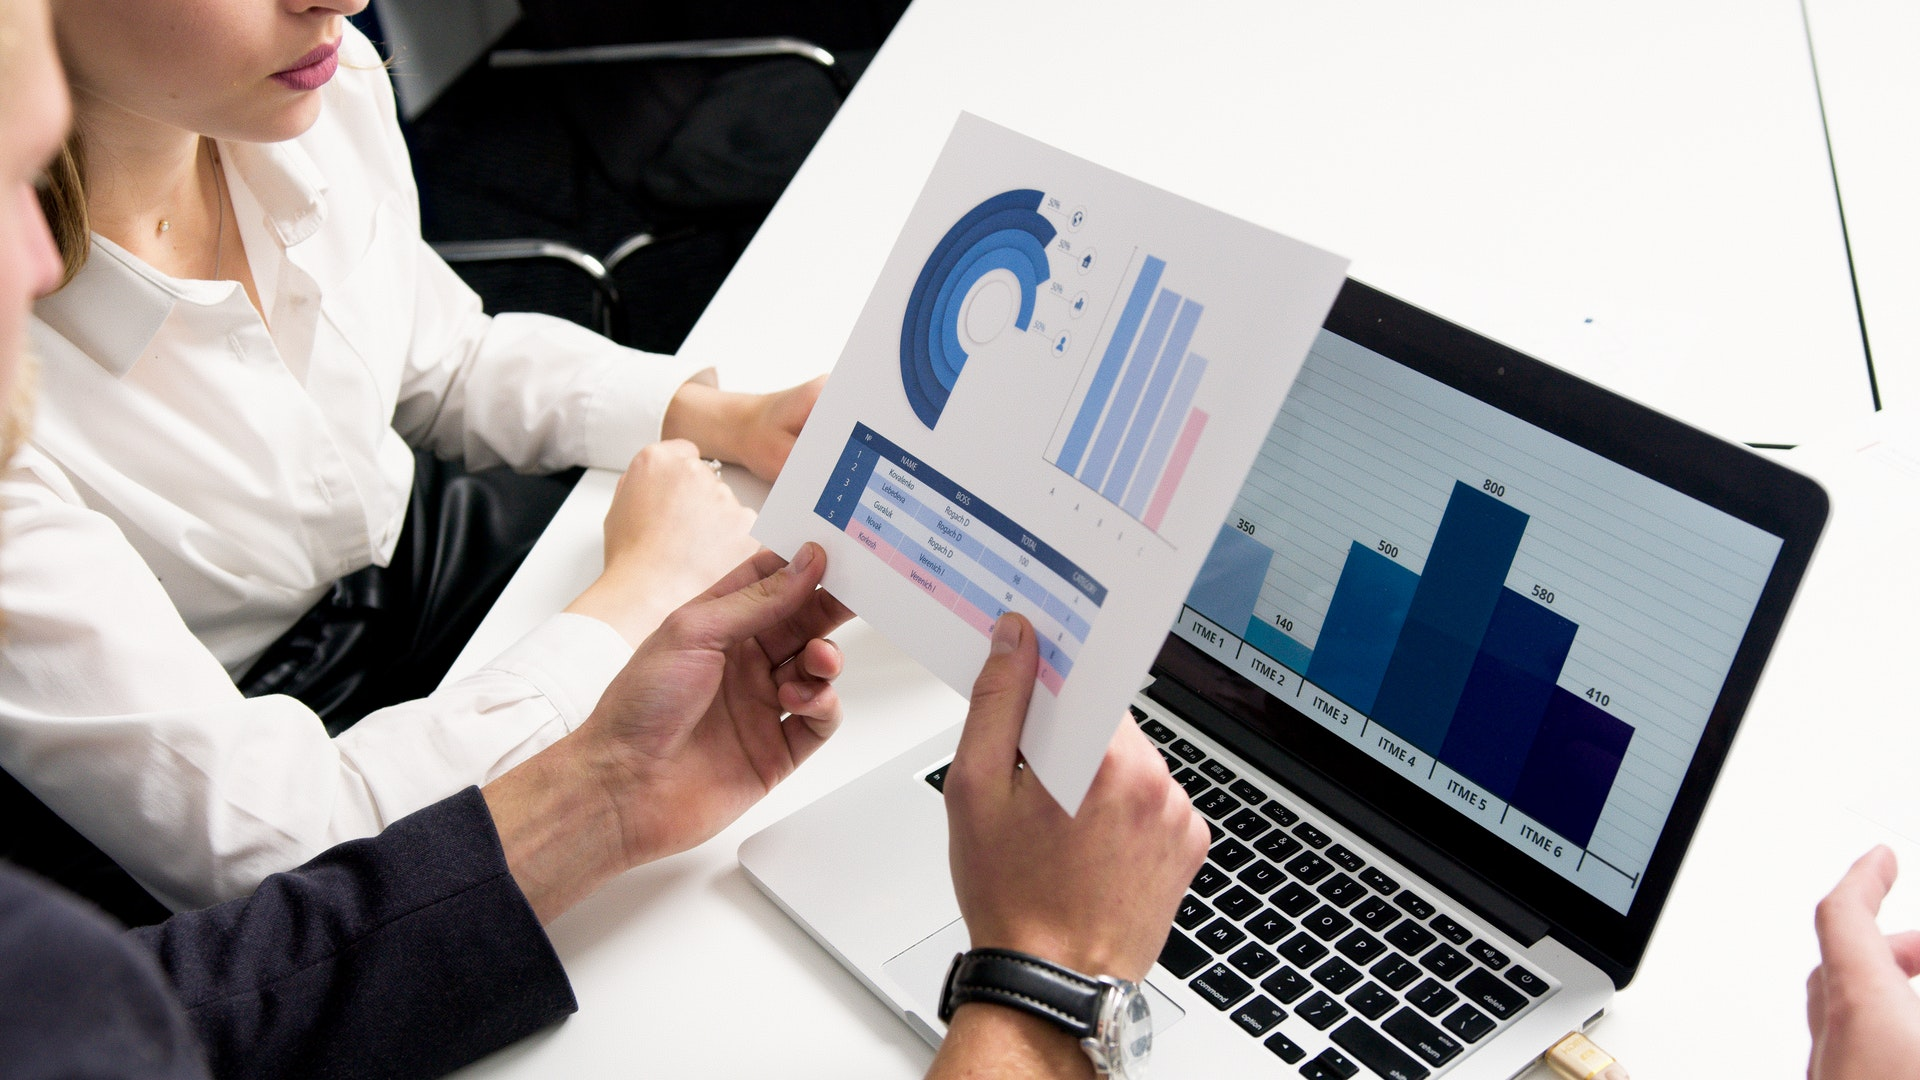 Improving Sales Growth By Using Data Analysis & Strategy | Case Study by OWLLytics